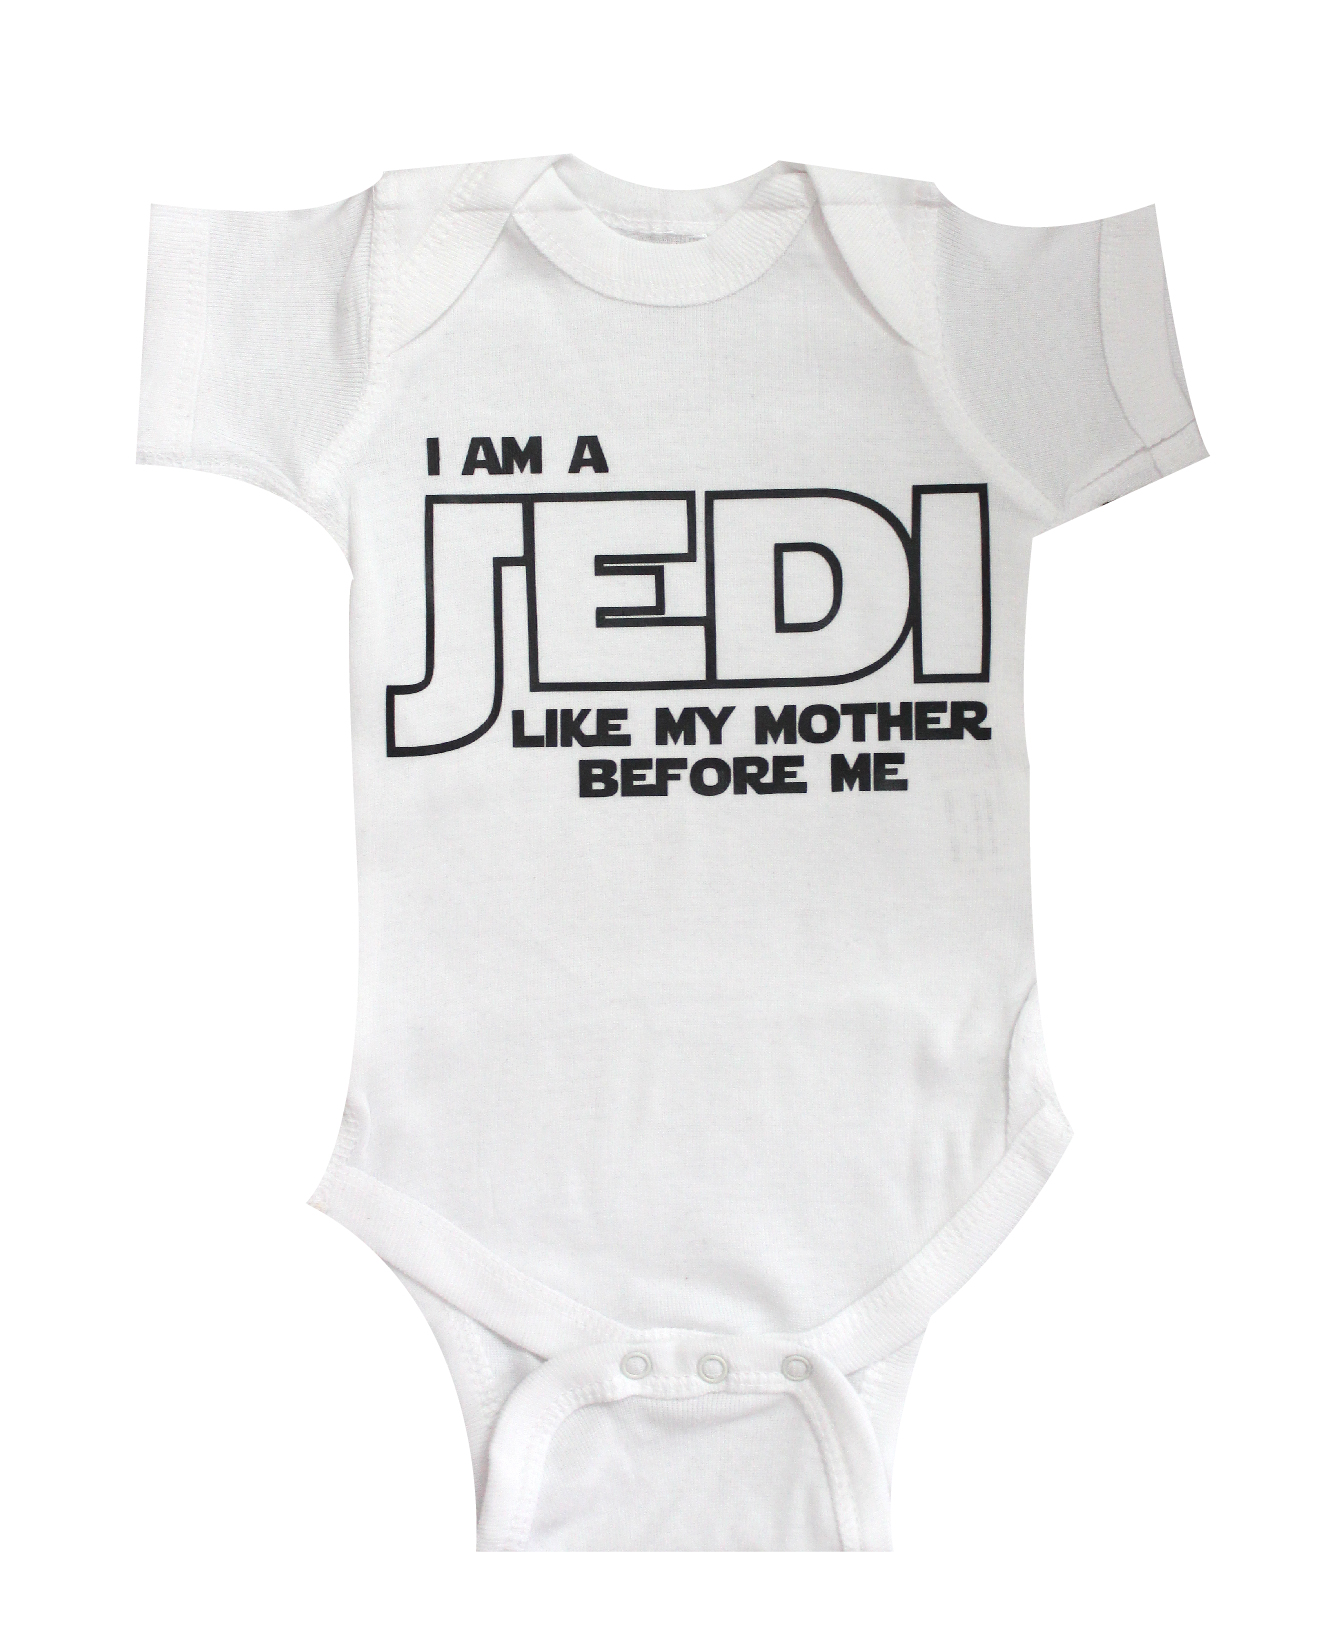 Star Wars Baby I am Jedi like my mother Baby Clothes